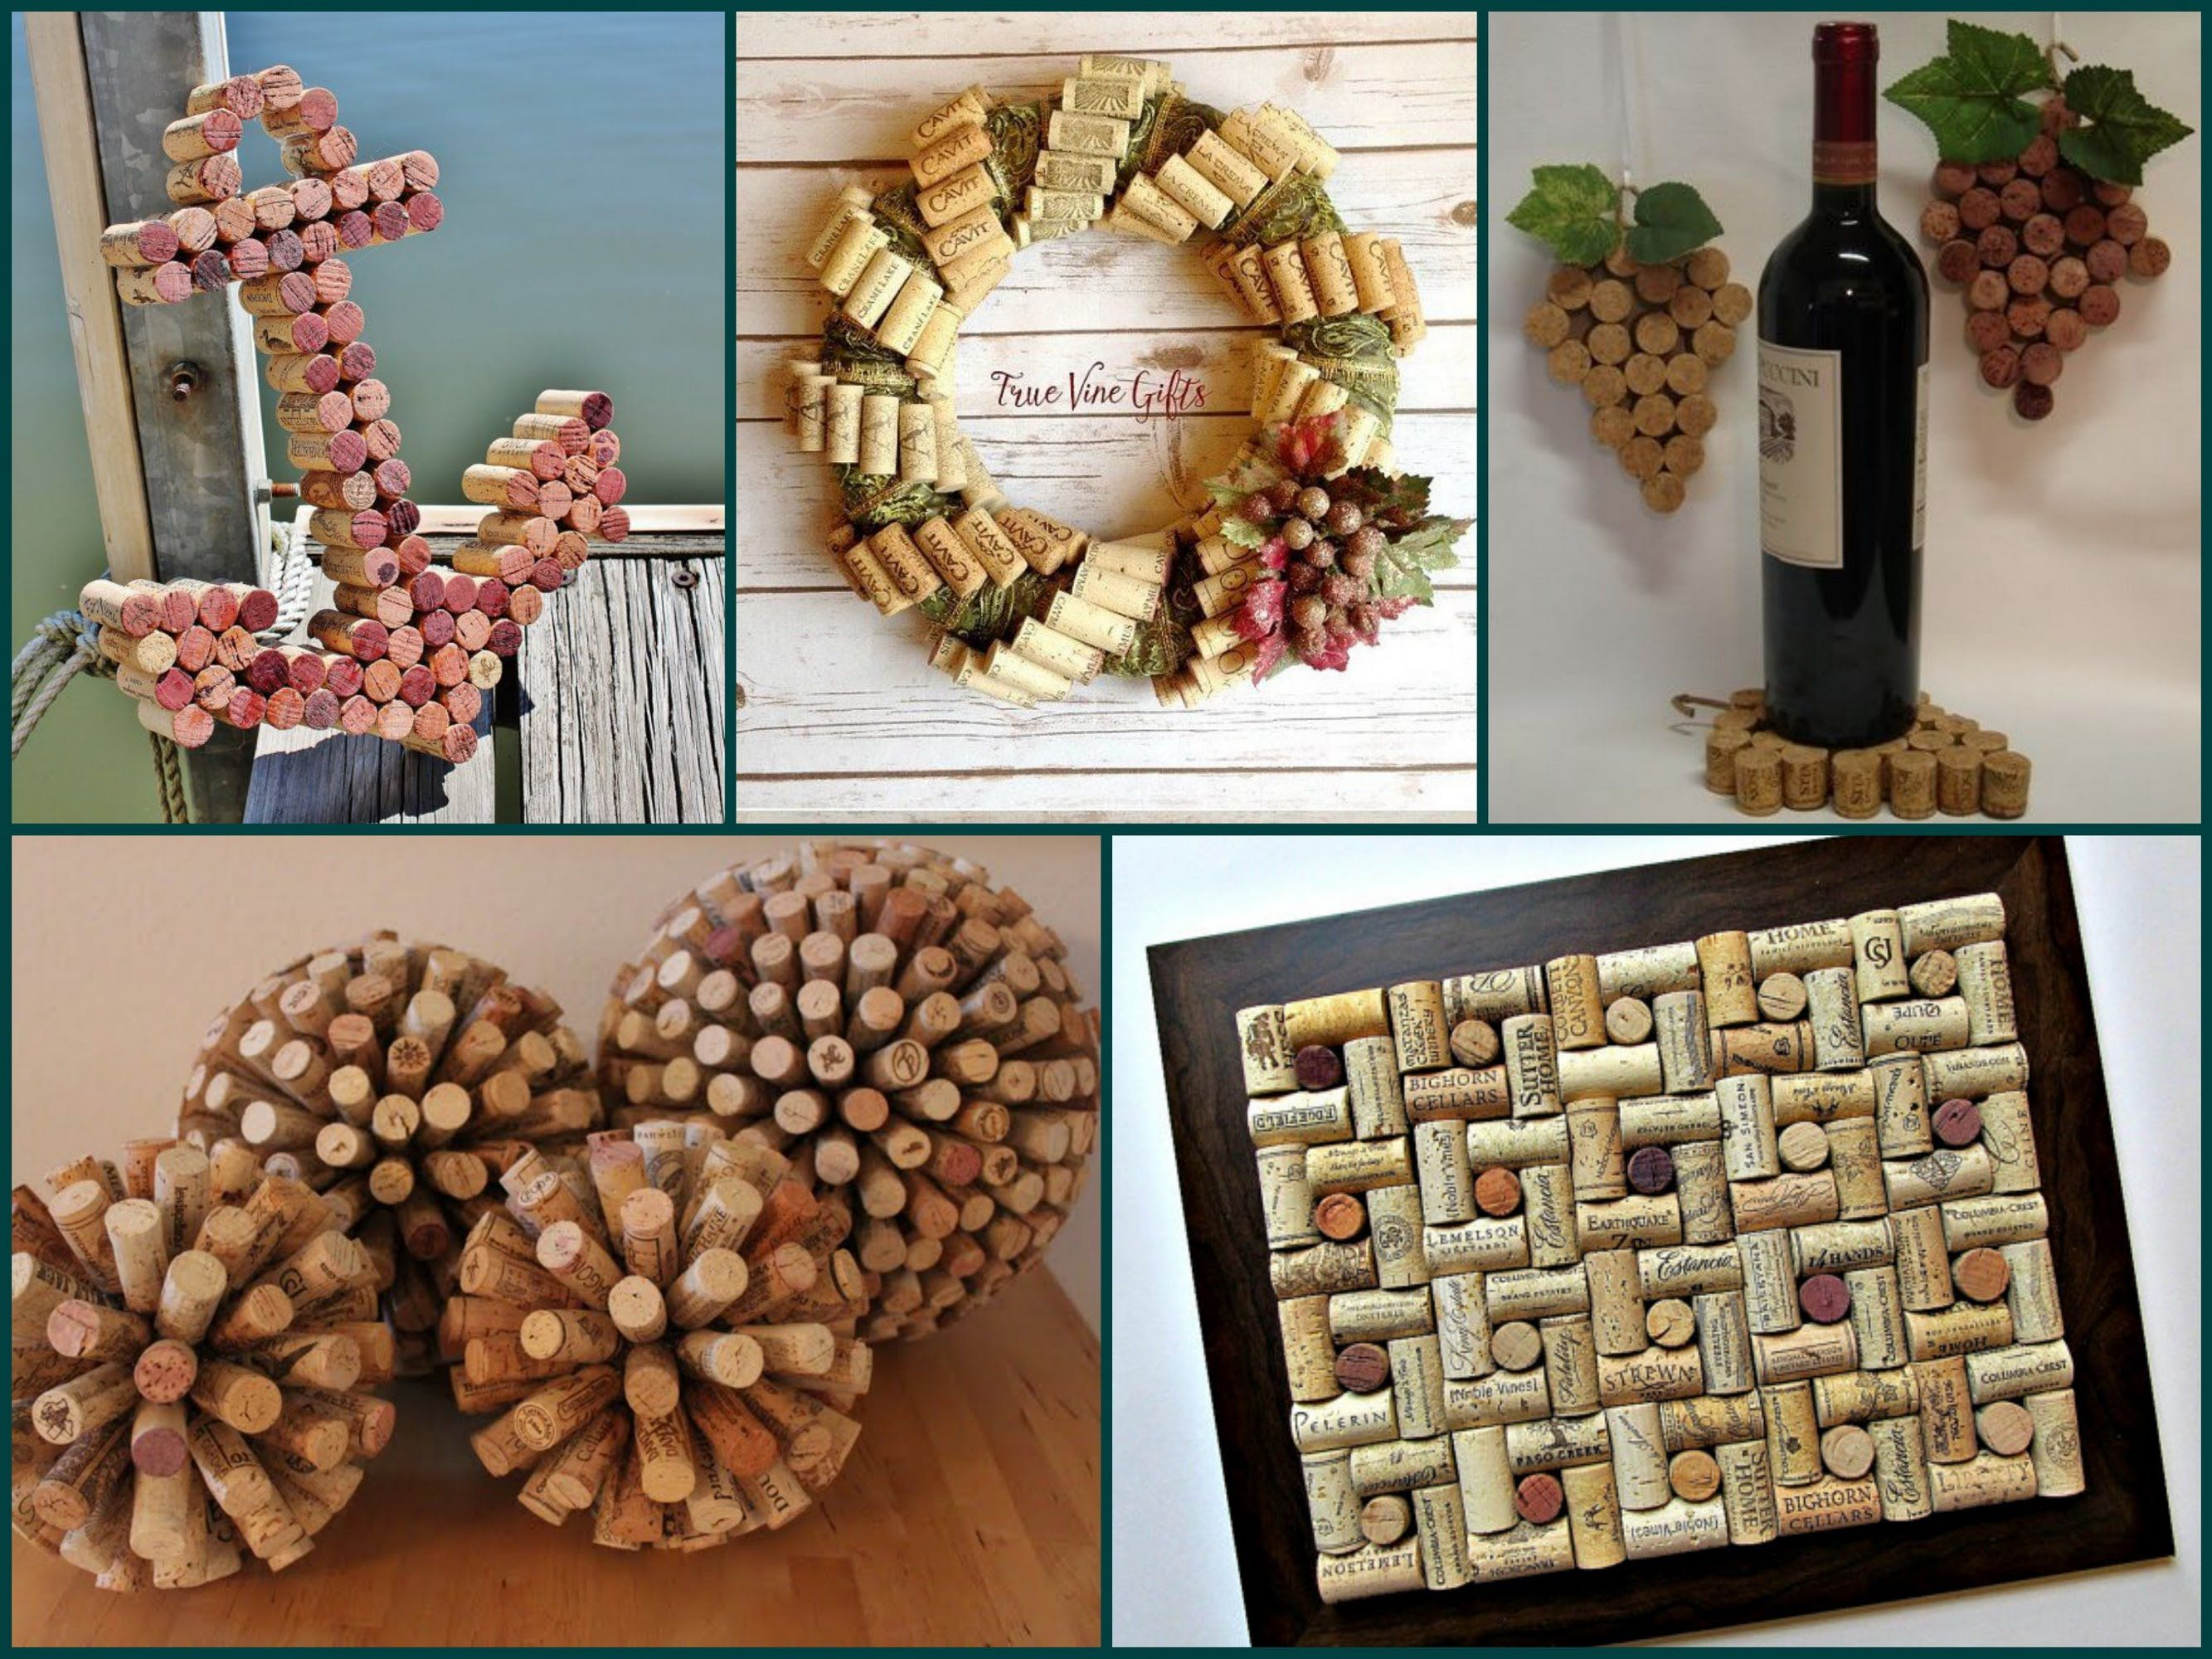 recycling ideas for home how to use wine corks: - handmade 3d